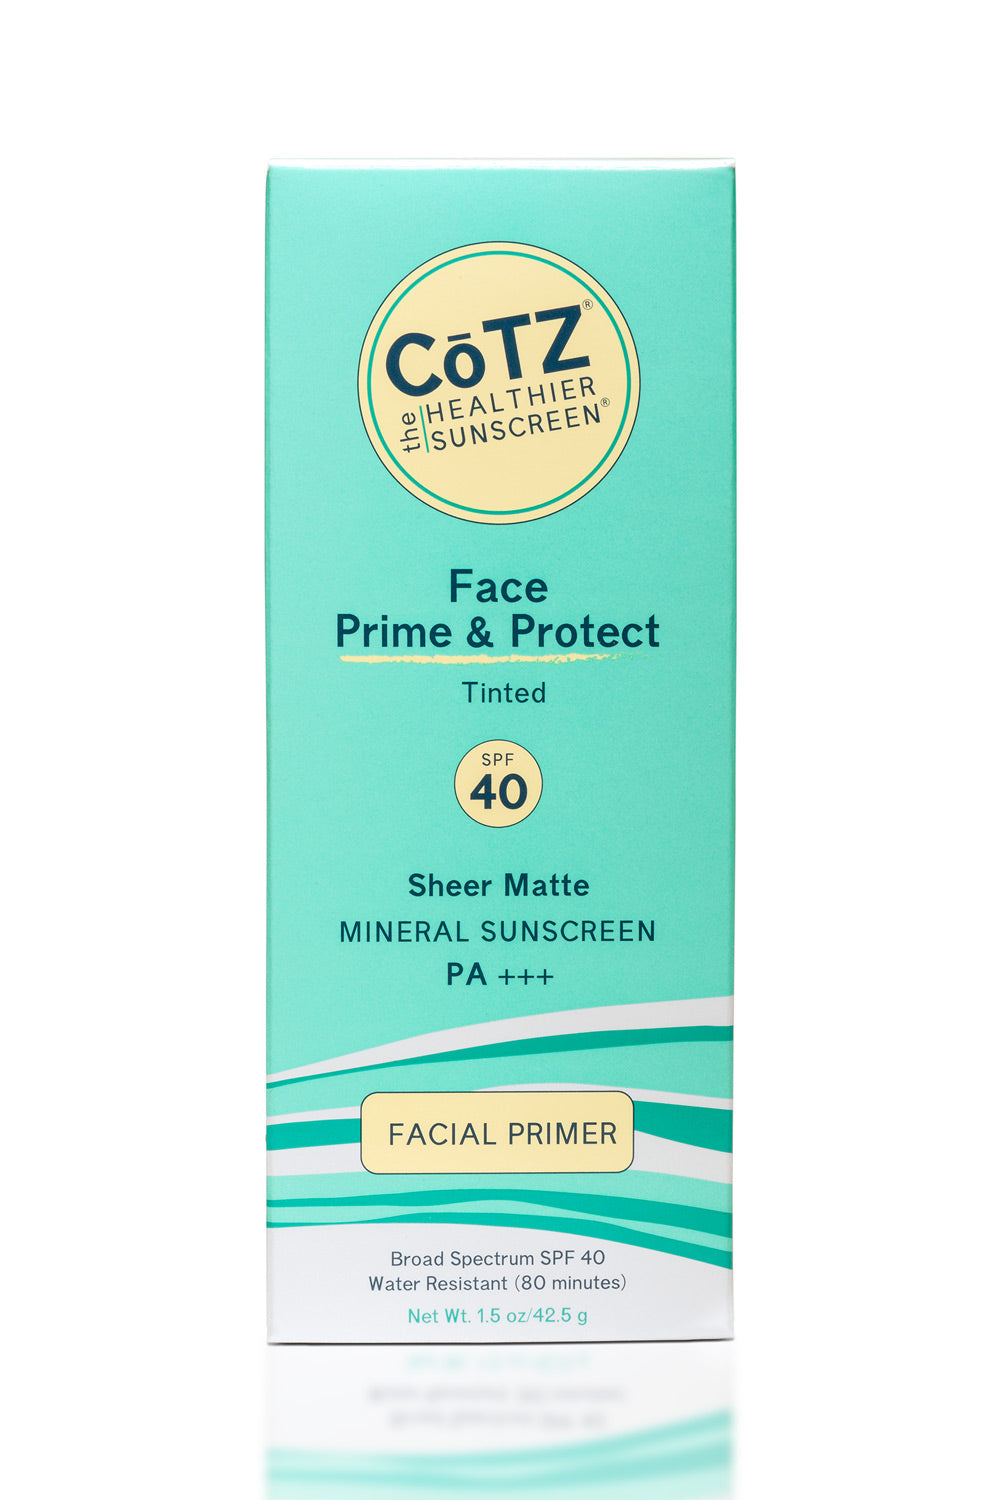 Face Prime & Protect SPF 40 Tinted